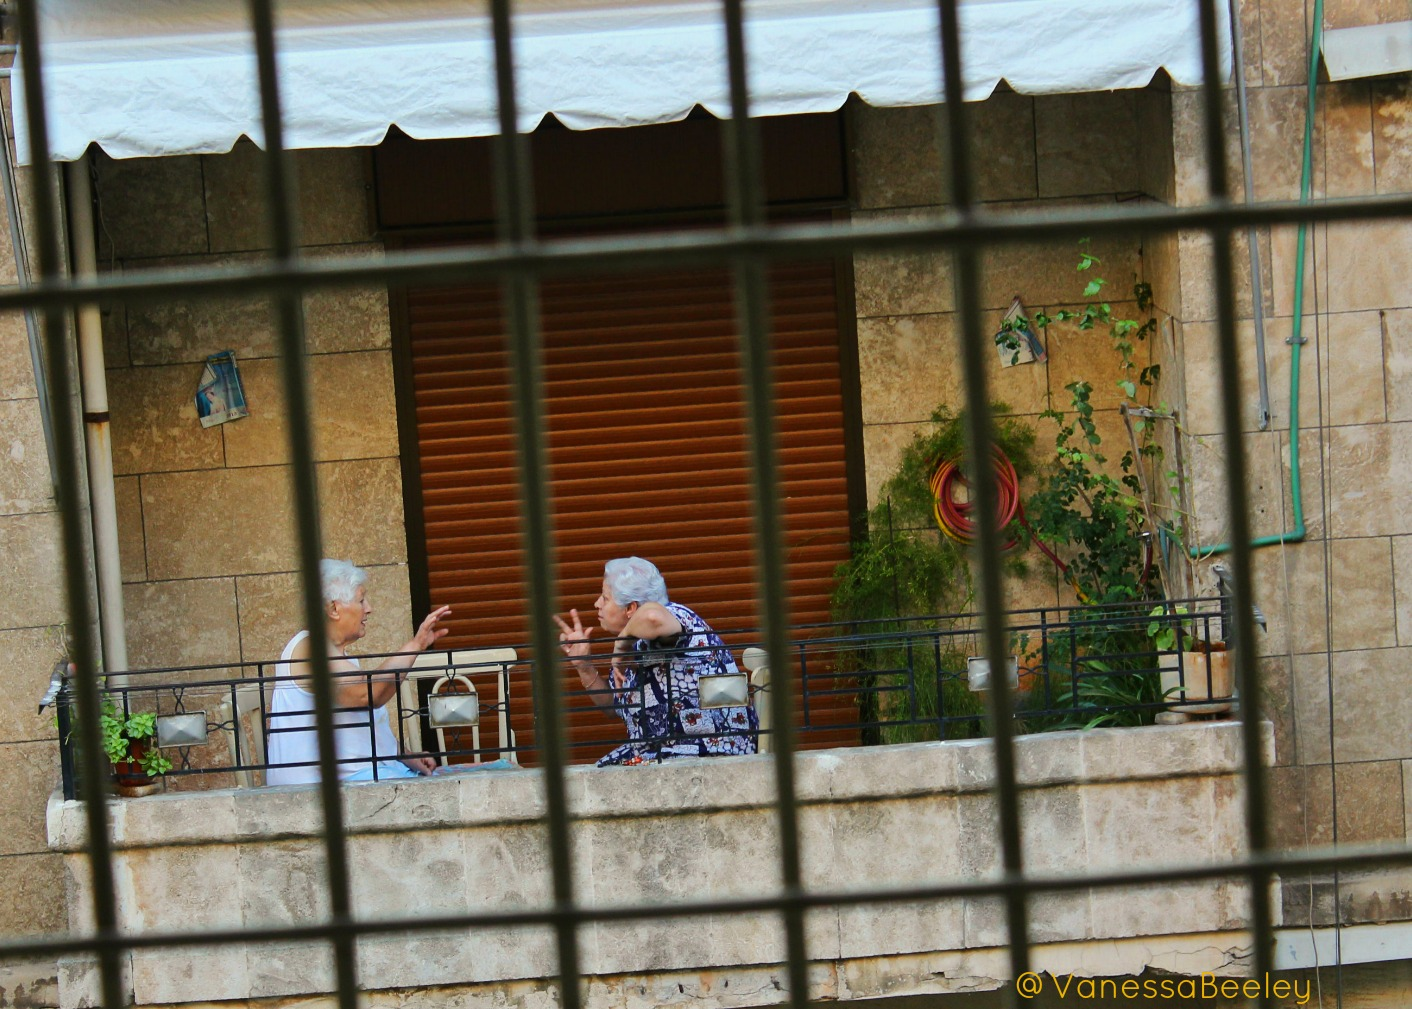 Two ladies have an animated chat at dawn in Aziziya, western Aleppo. (Photo by Vanessa Beeley)